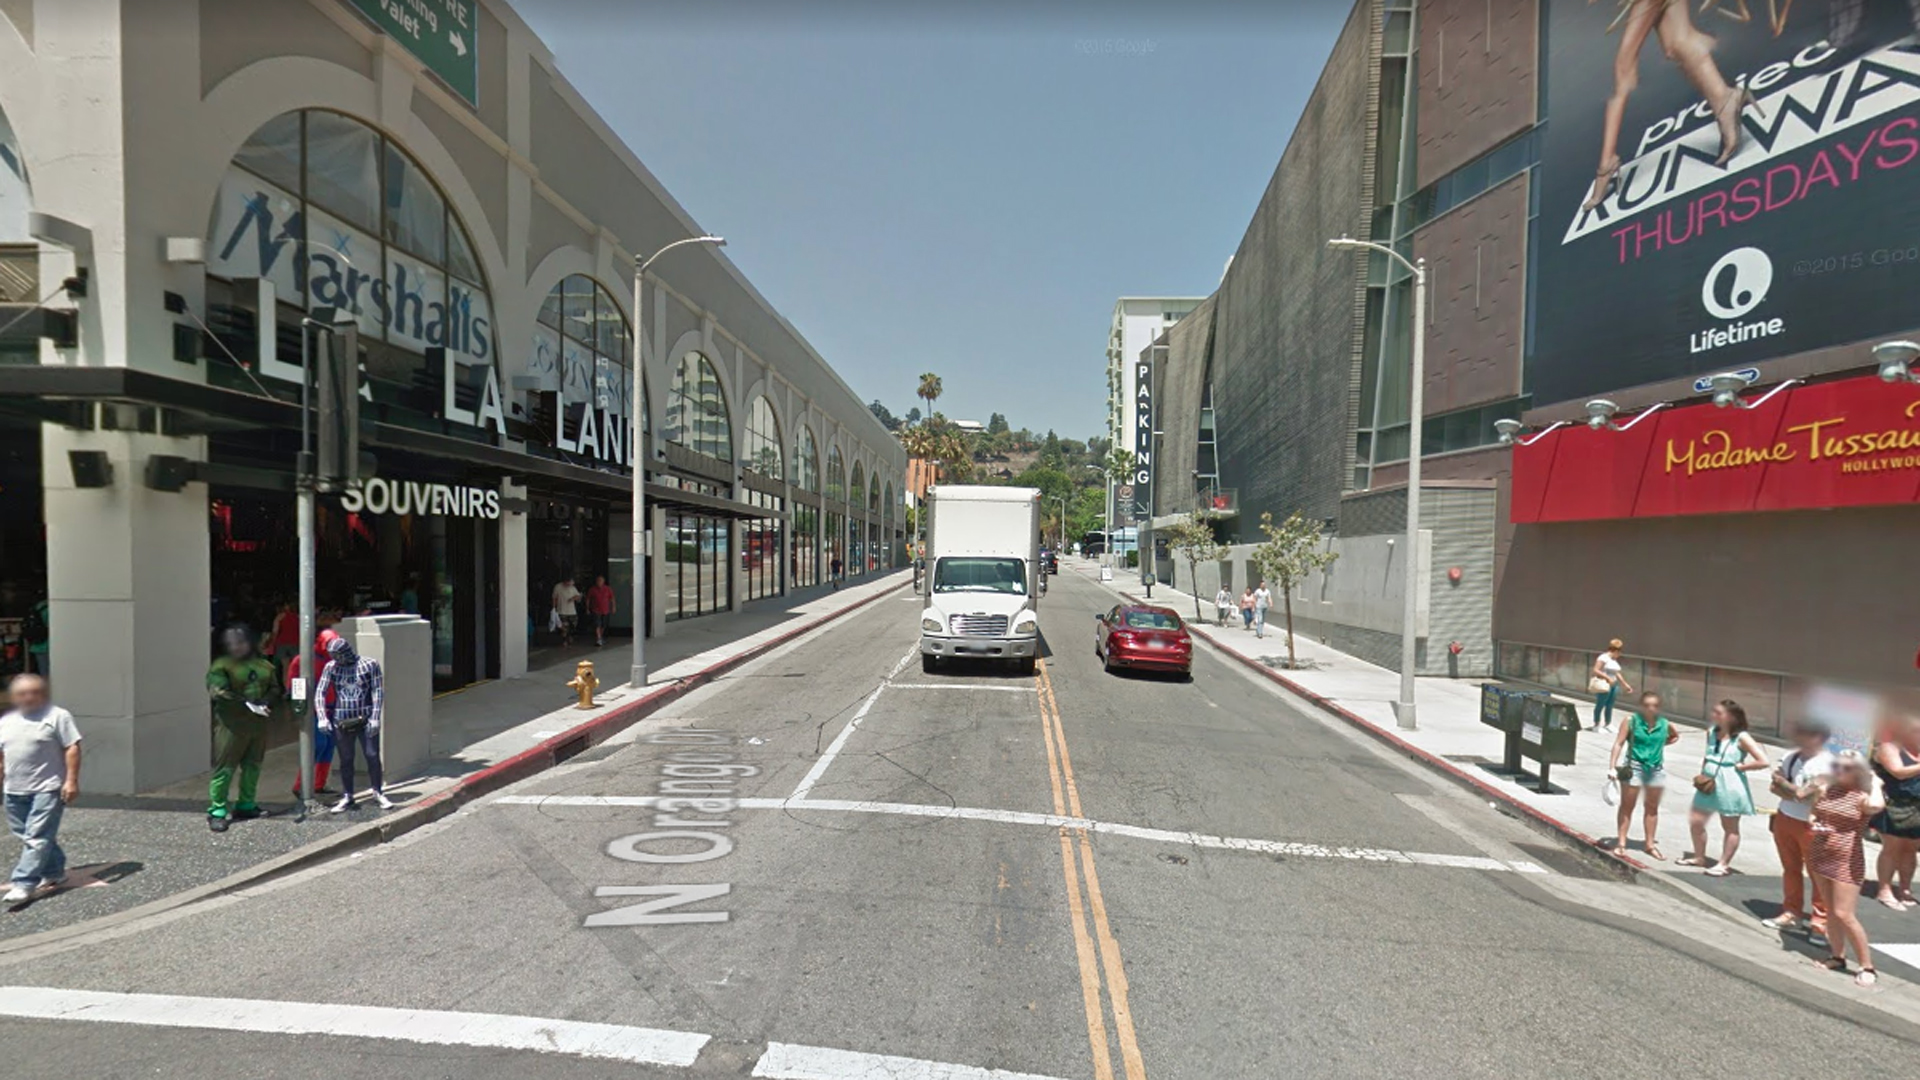 Orange Drive, looking north from Hollywood Boulevard, in Hollywood, as viewed in a Google Street View image.